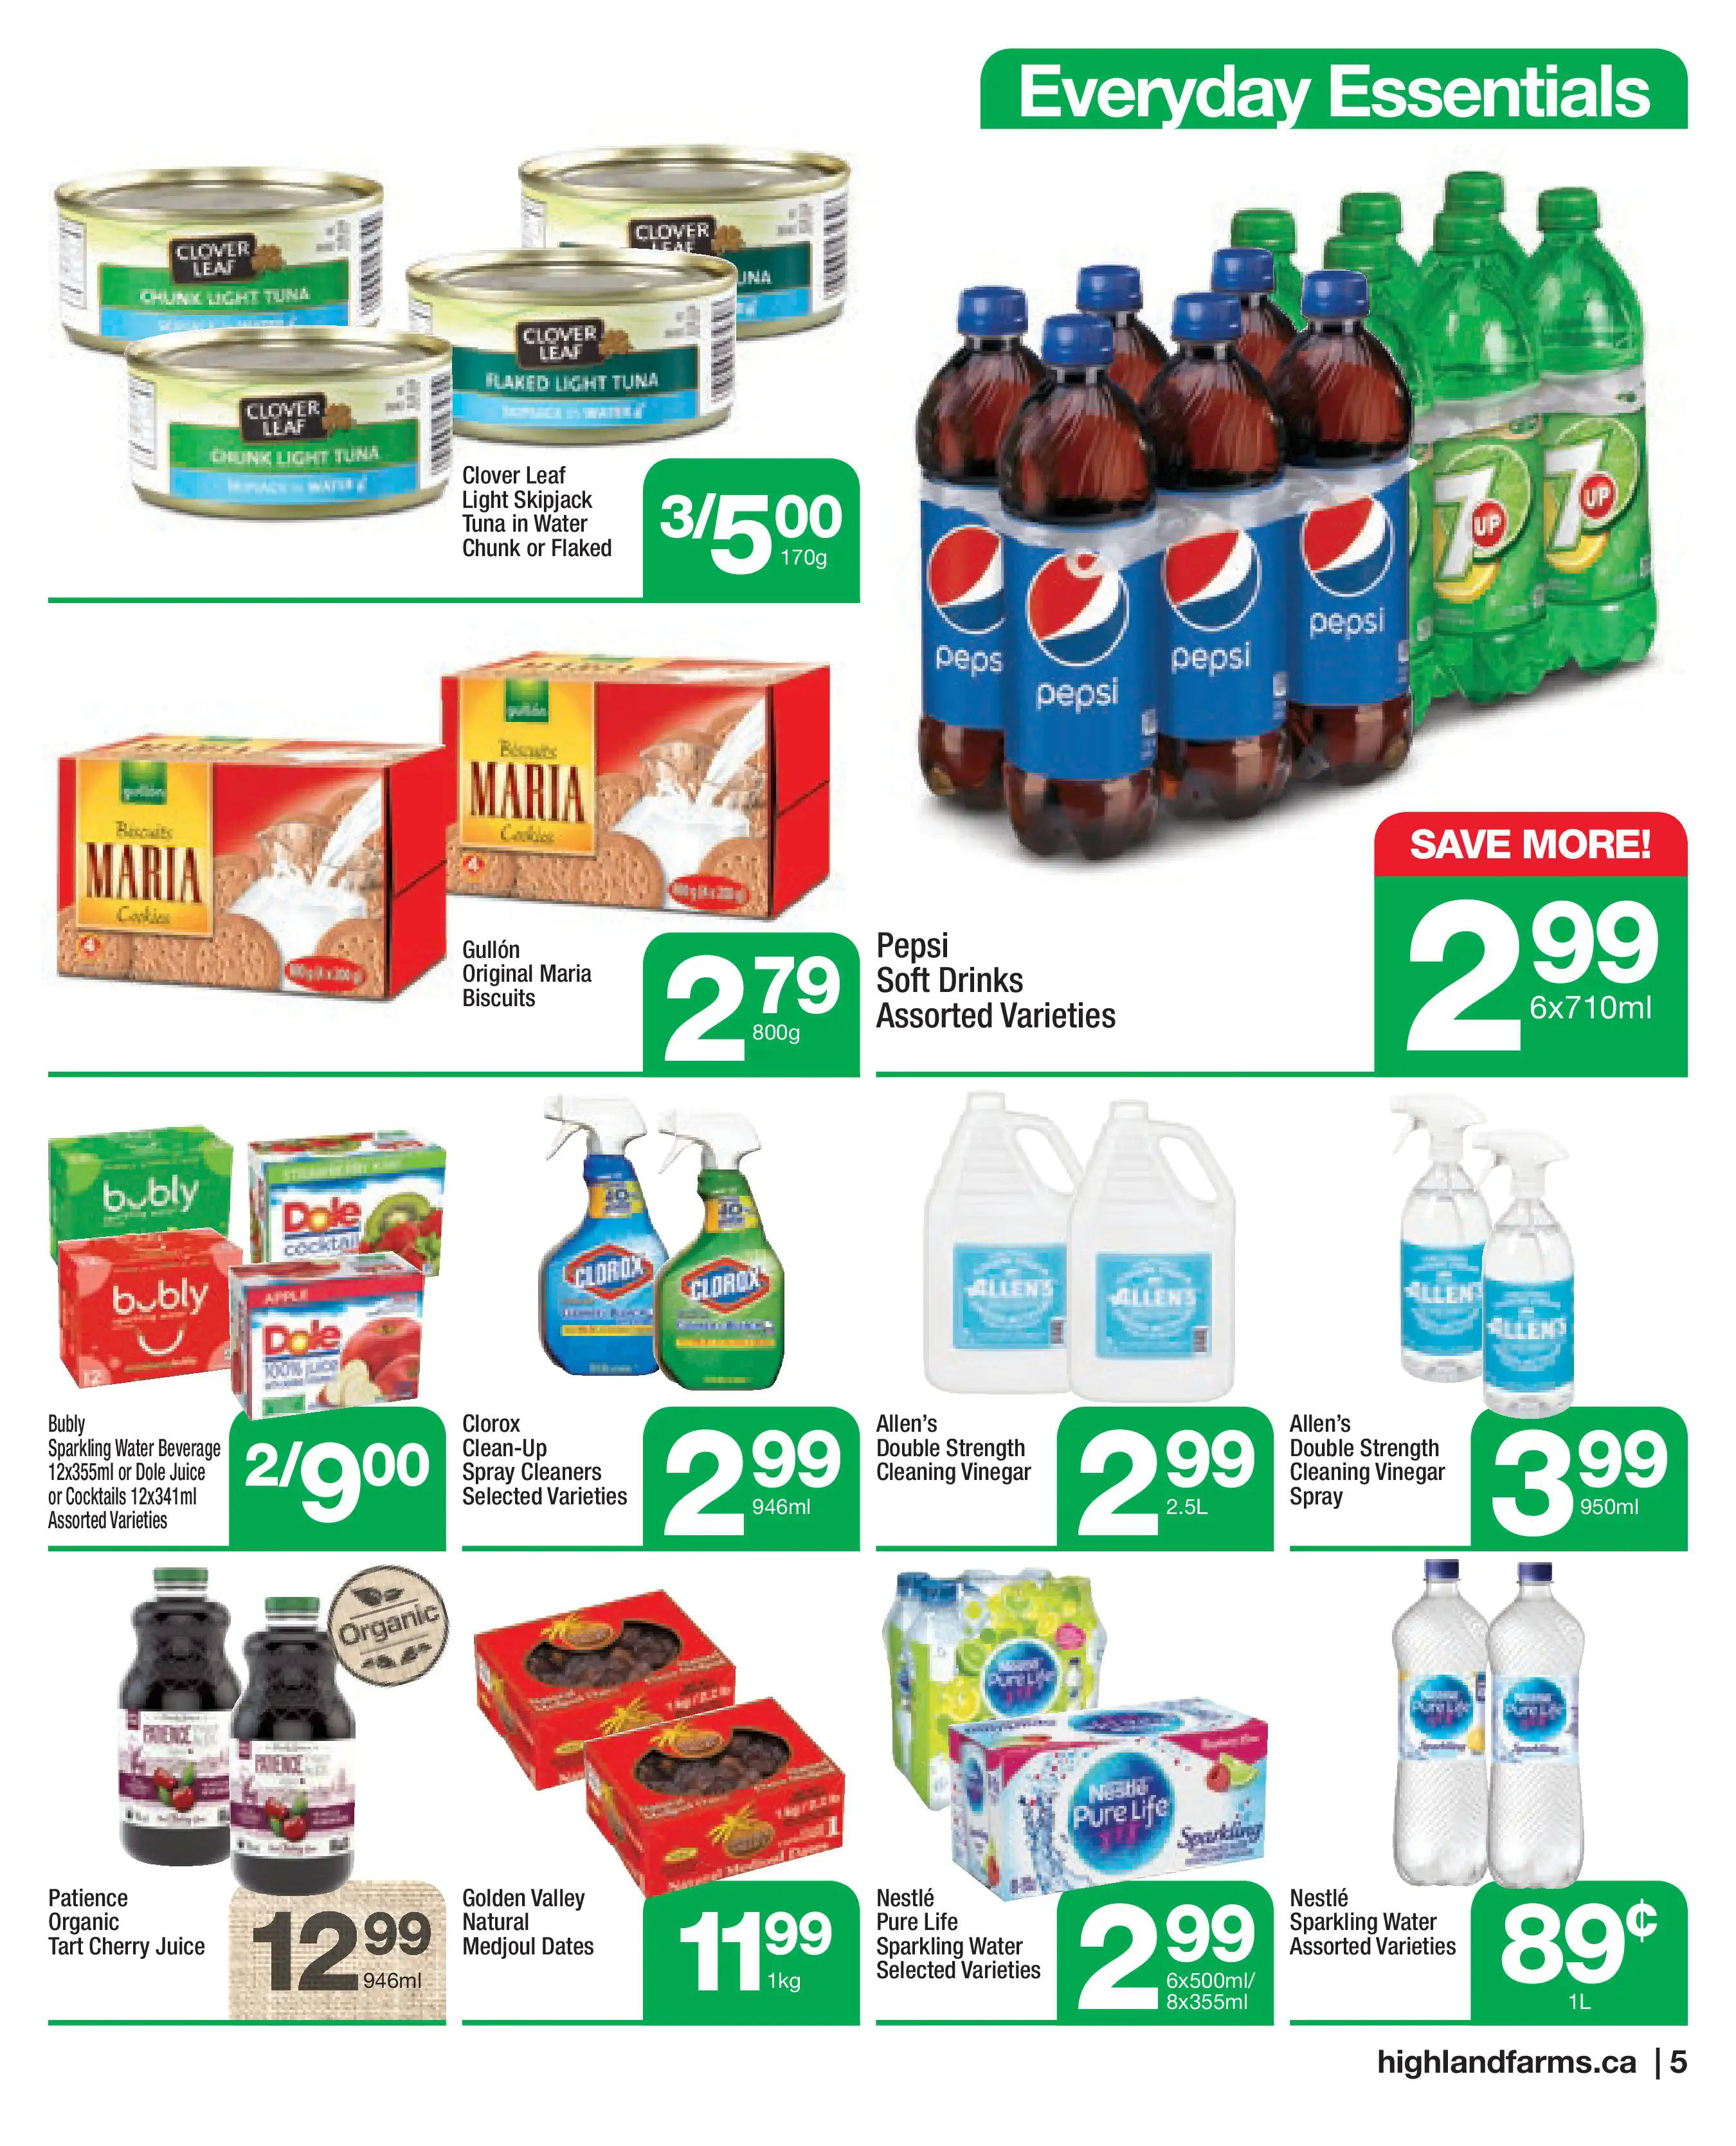 Highland Farms - Weekly Flyer Specials - Page 5